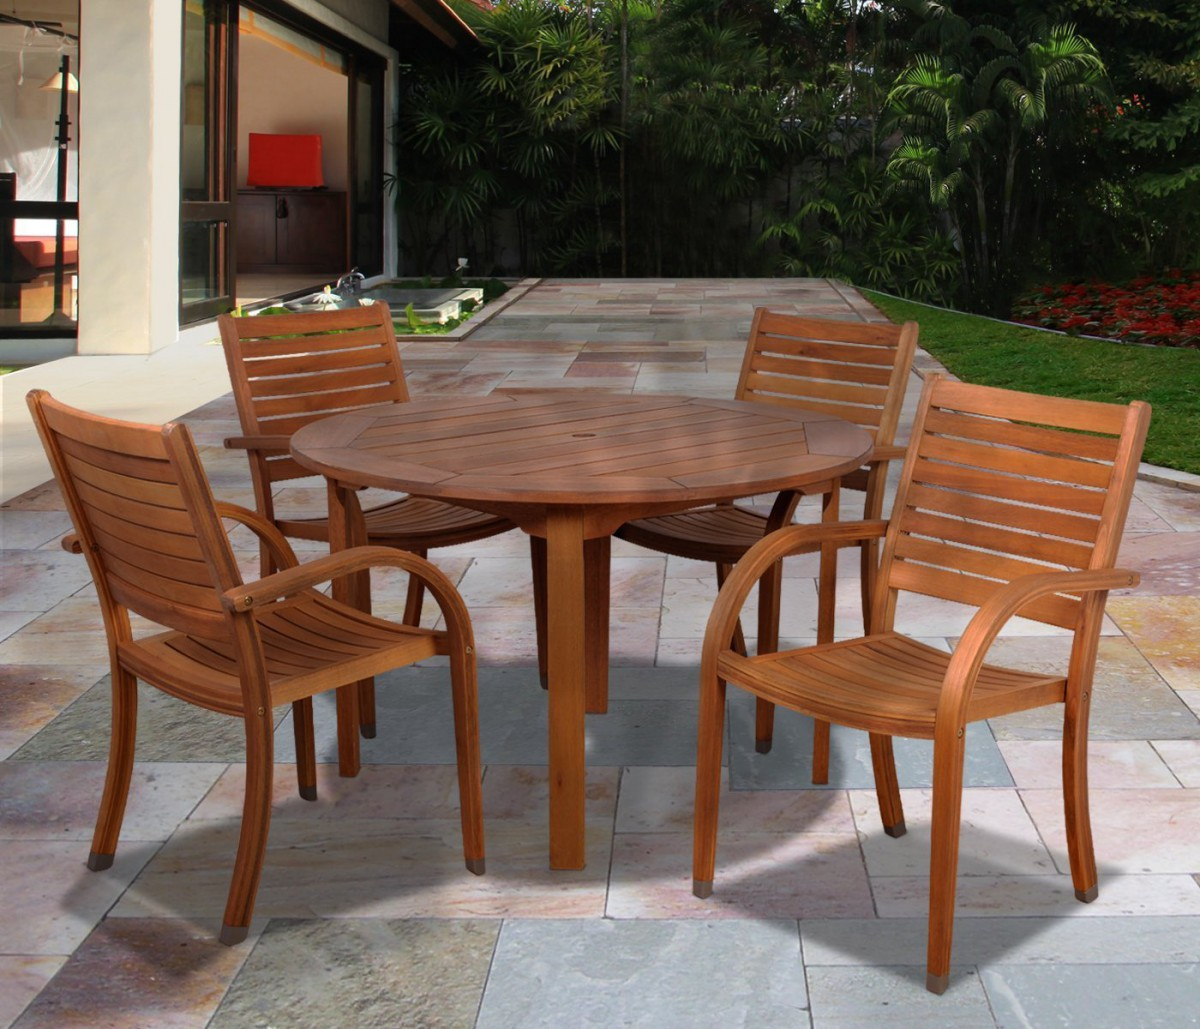 Amazonia arizona 5 piece wood outdoor dining set with 47 for Outdoor table set